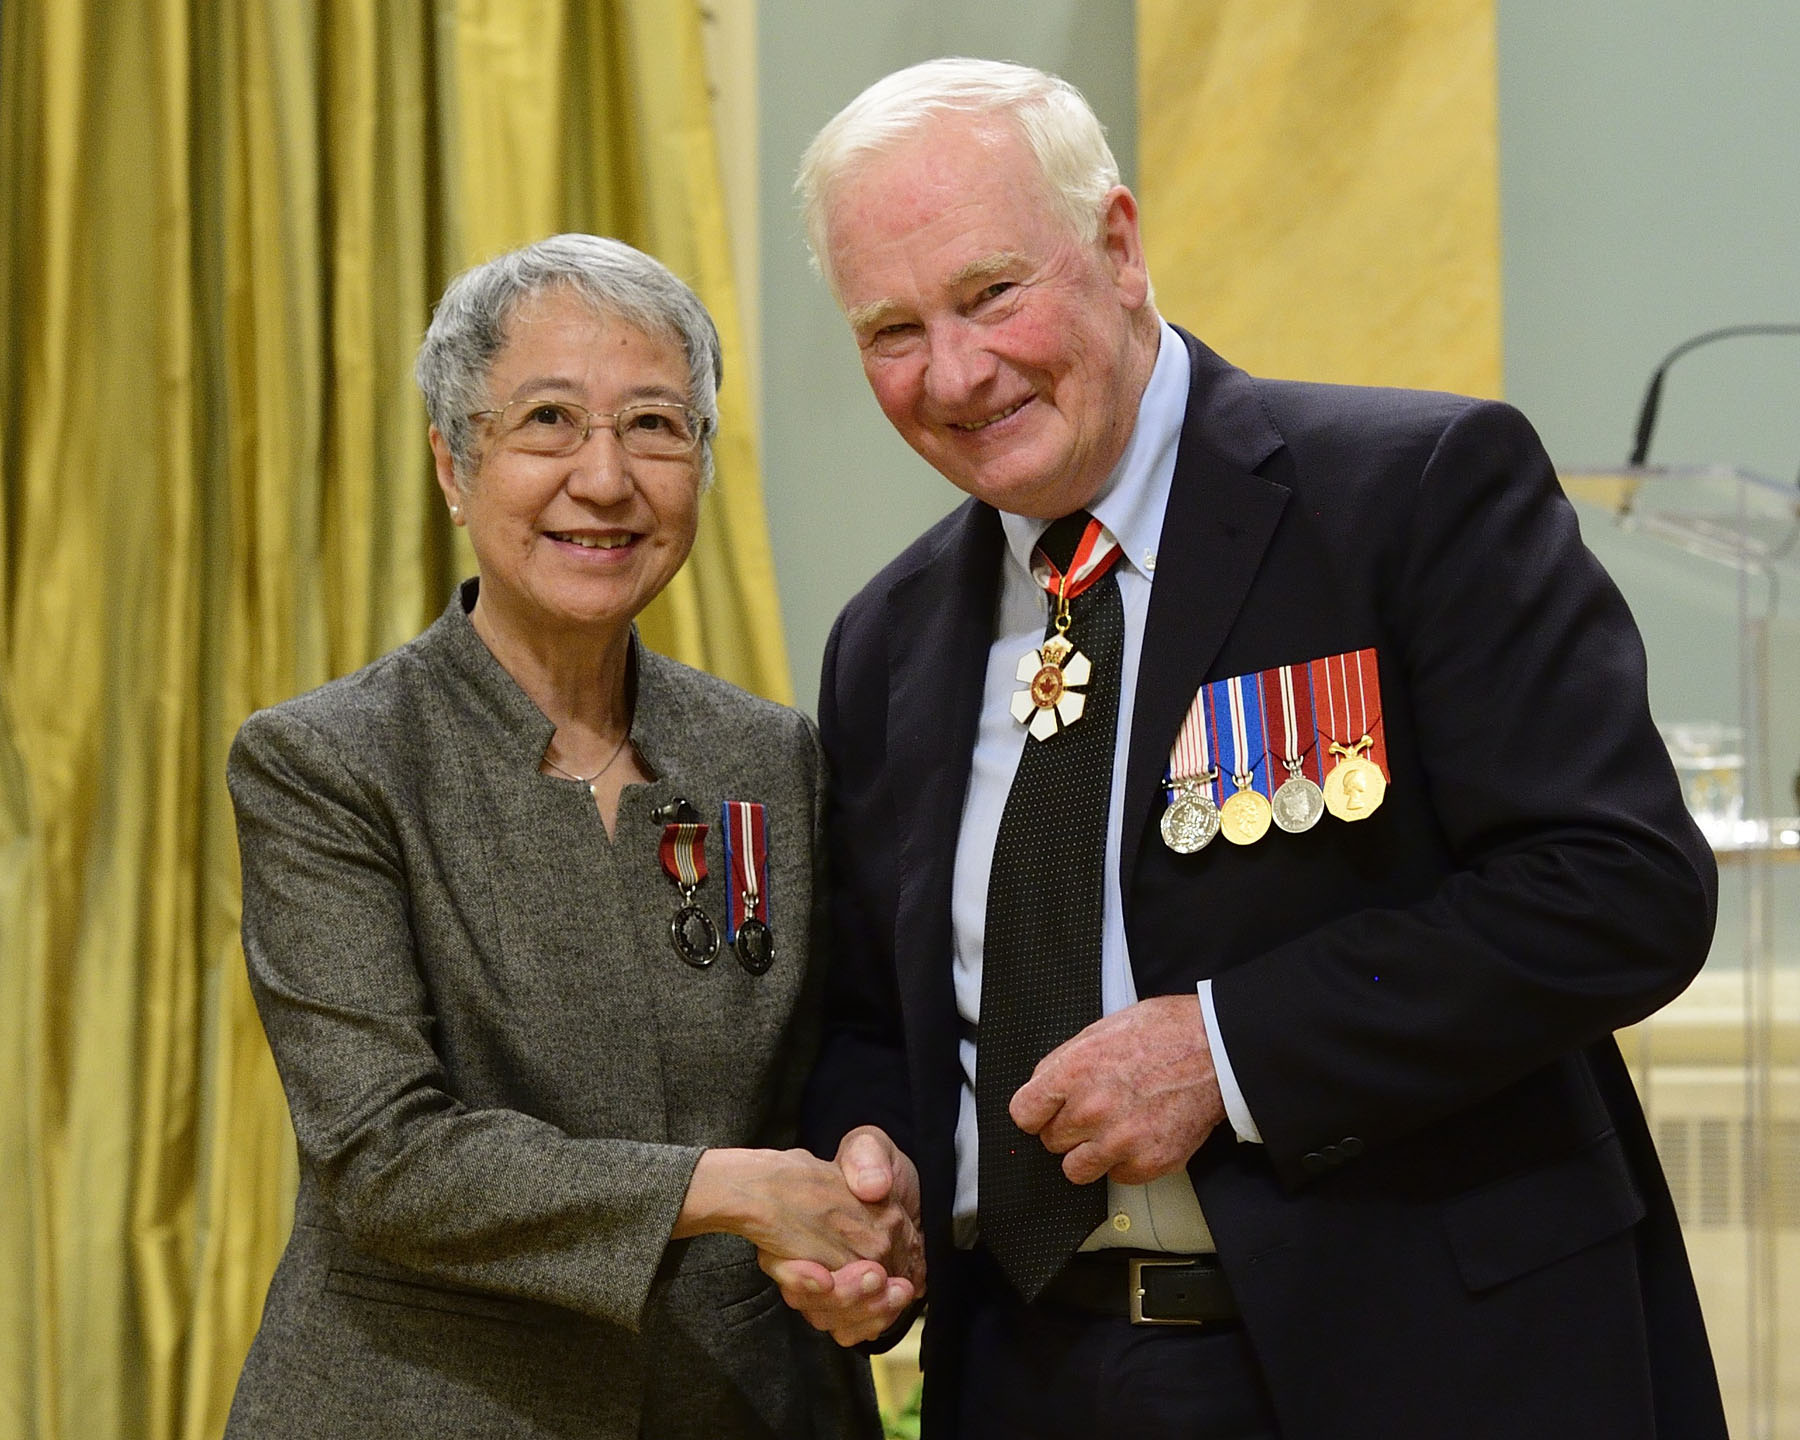 Since 2003, Mai-yu Chan has dedicated both time and resources to the Friends of the Canadian War Museum, inspiring volunteers and visitors alike through creative programs involving the institution's art exhibitions and Regeneration Hall. She has also served as a board member, director and chair of the Membership Committee.